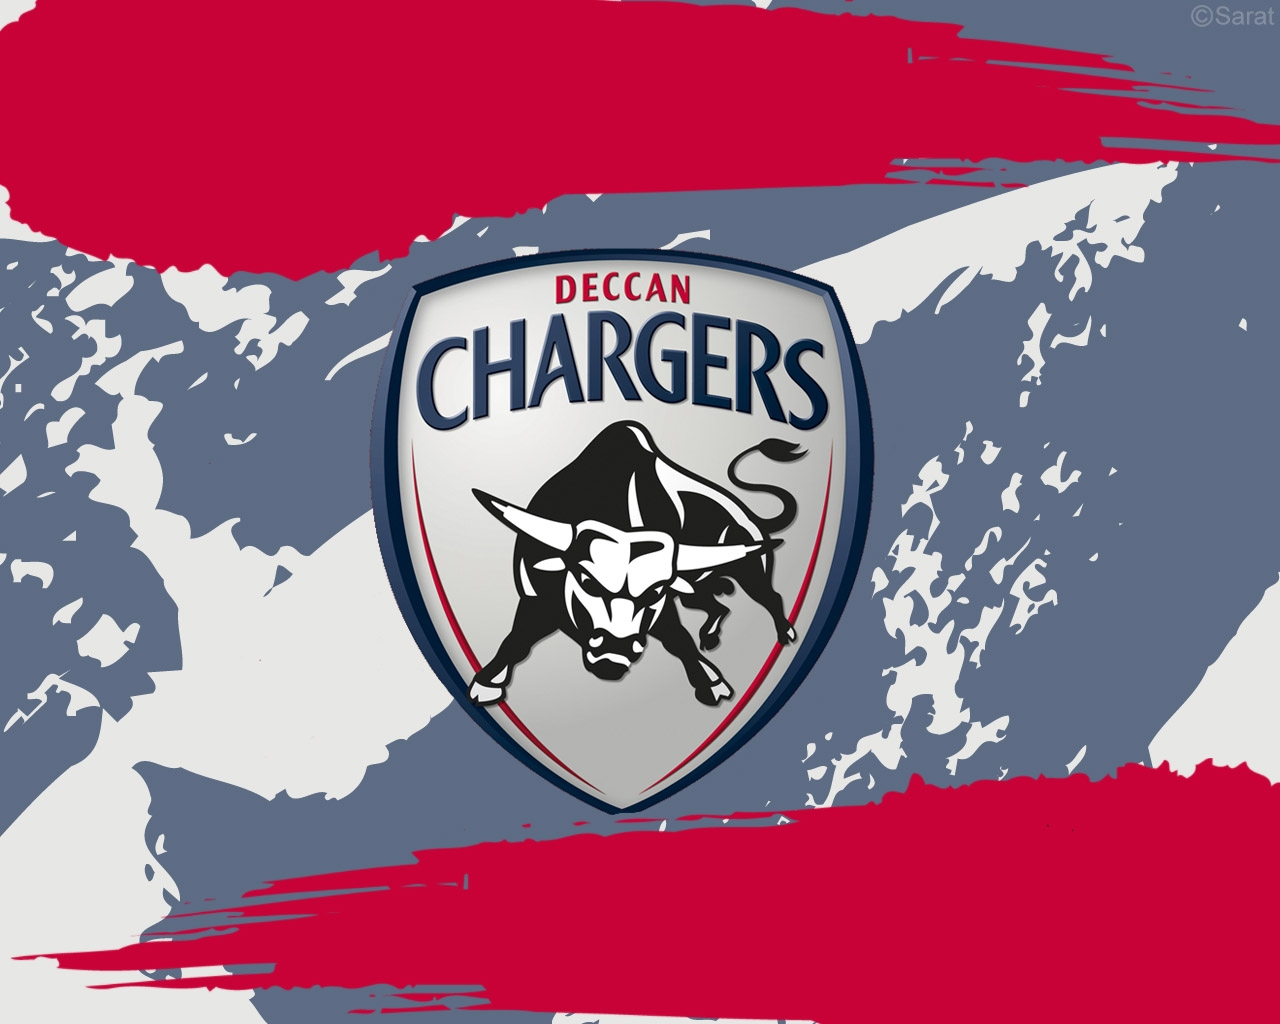 Deccan Chargers Logo Wallpapers. Deccan Chargers known in short as DC is a